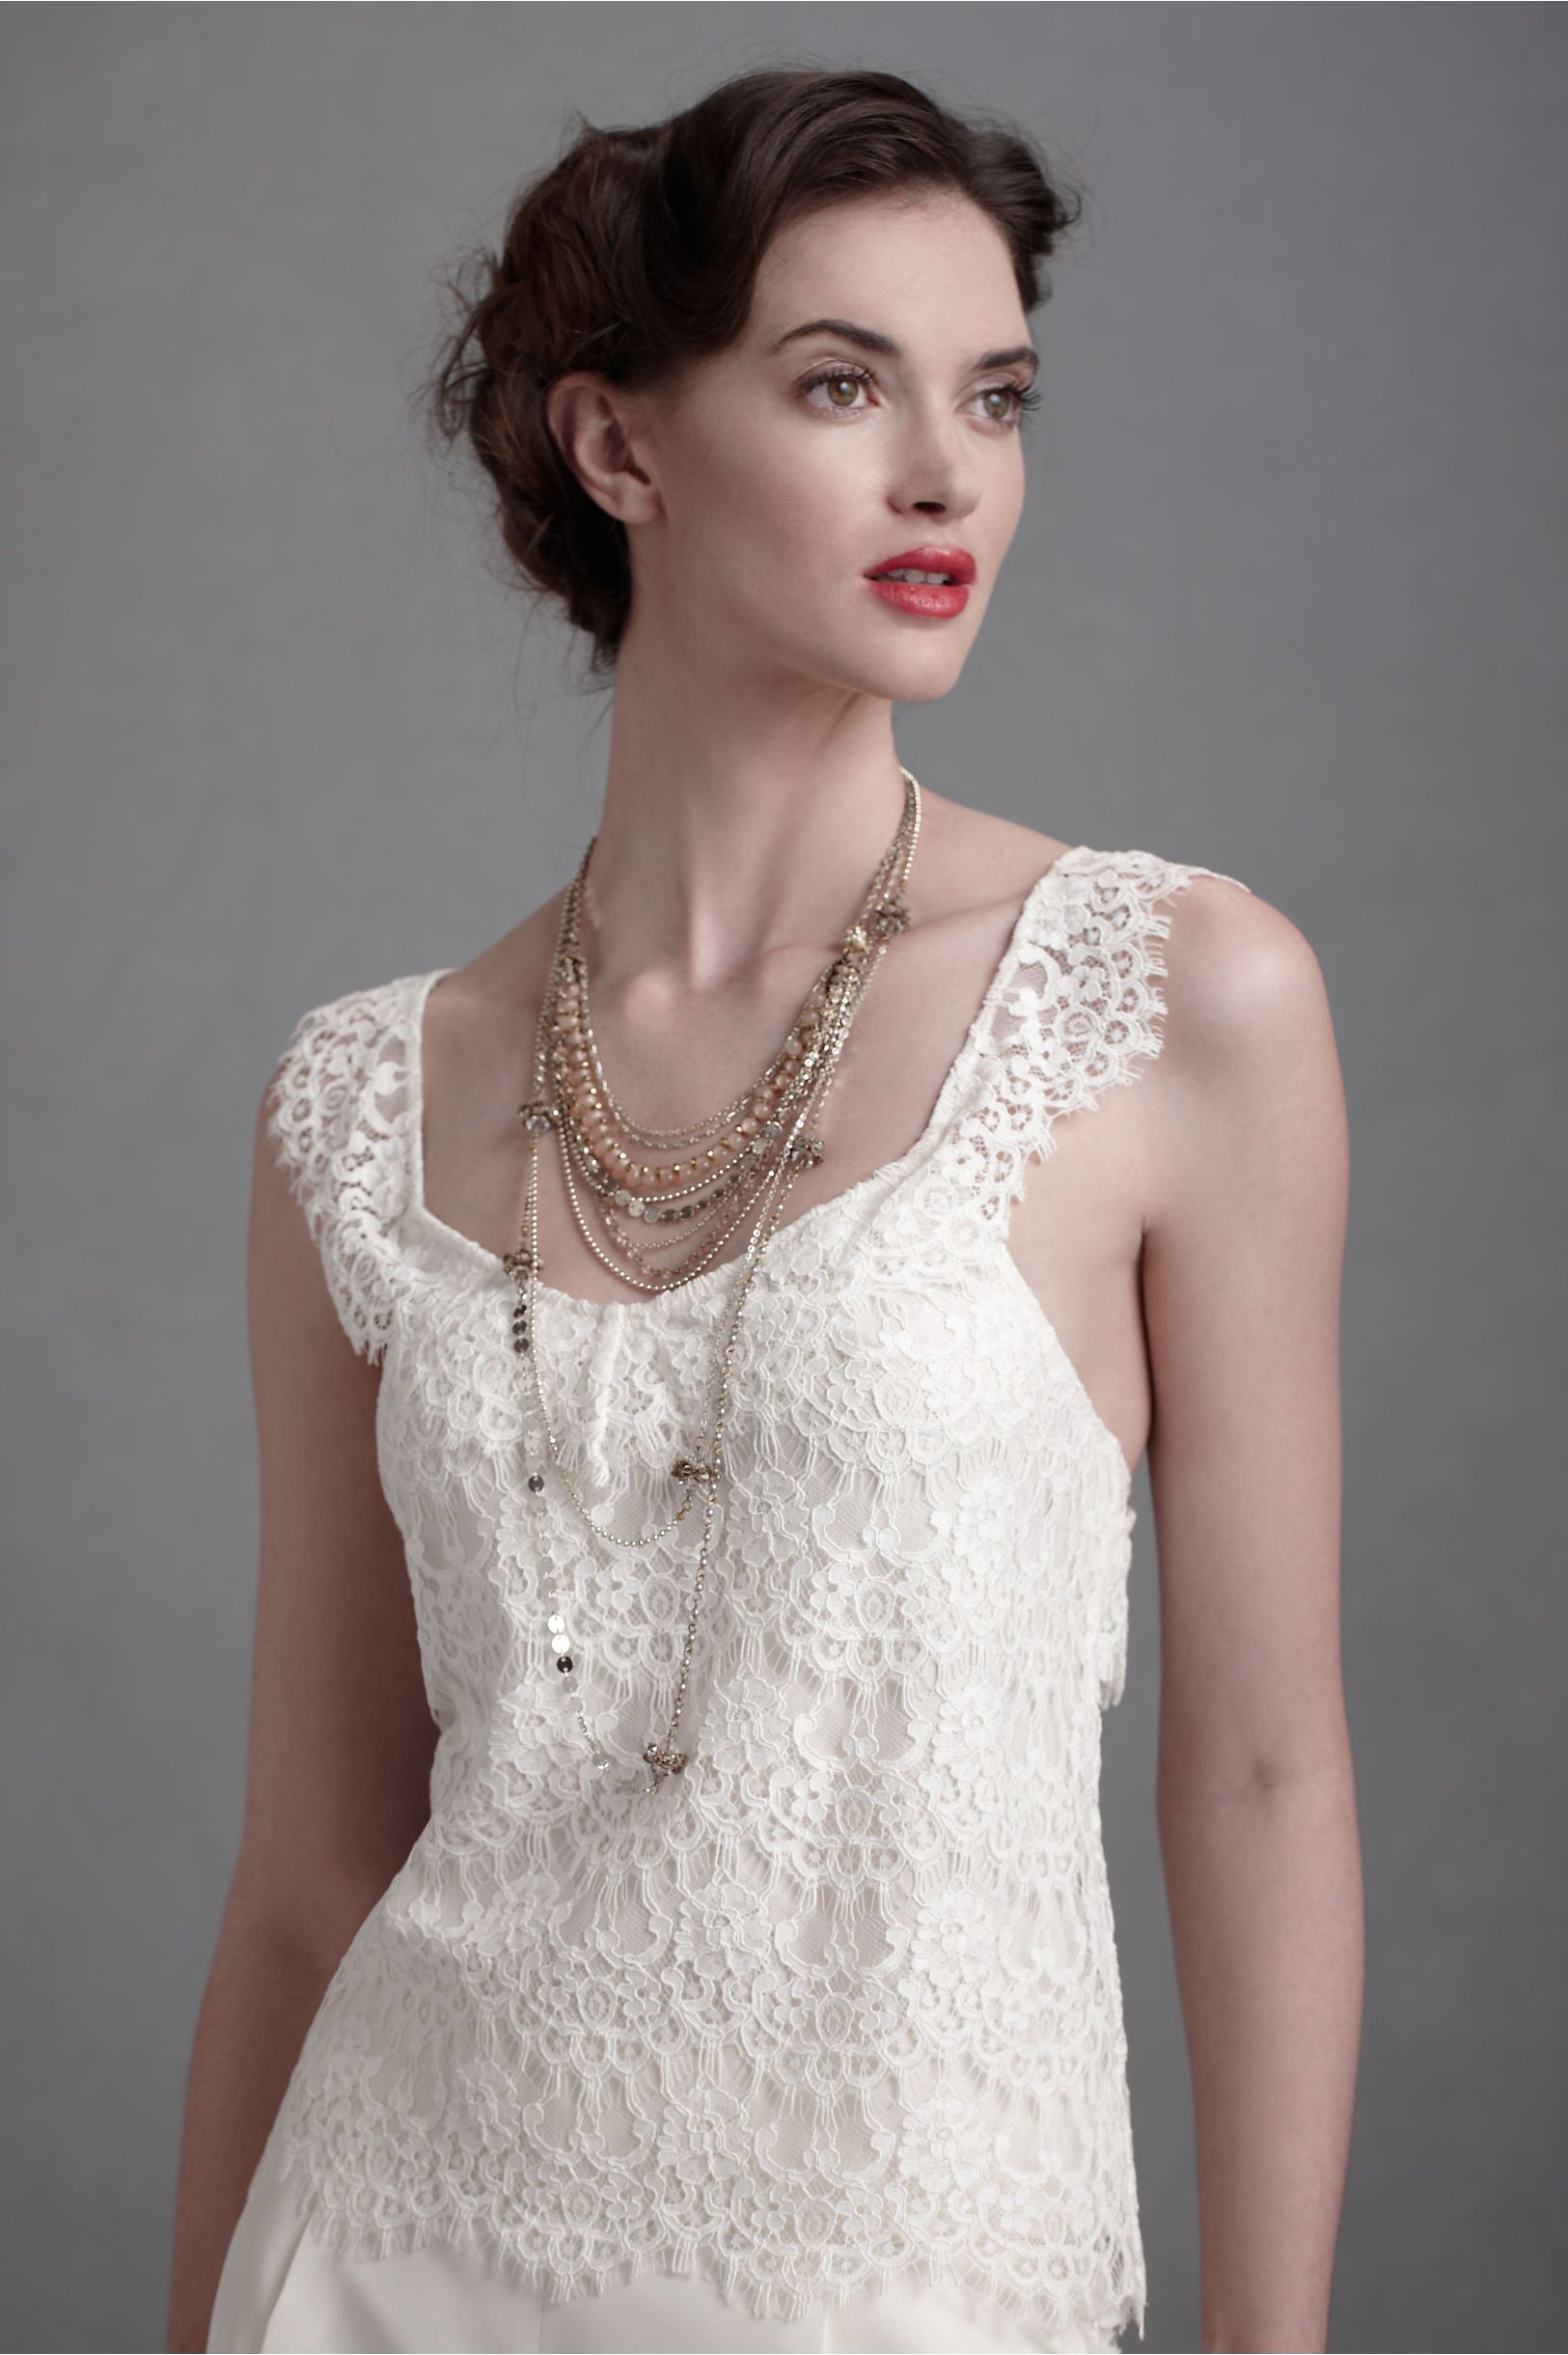 ToTheAir Top in SHOP Sale at BHLDN Wedding dresses for